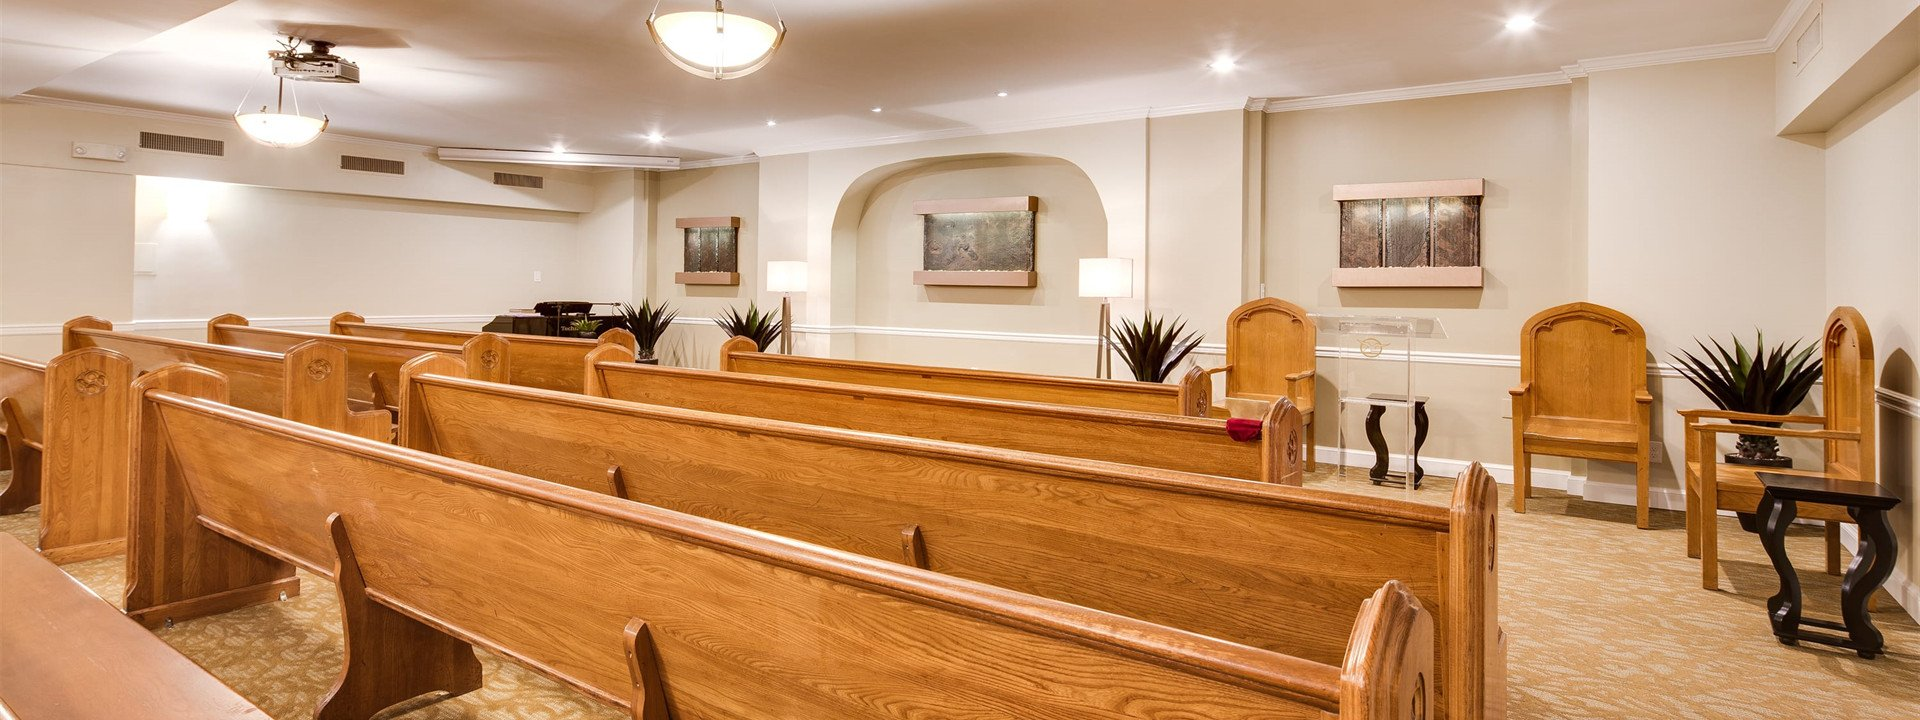 About Us | Marshall-March Funeral Homes